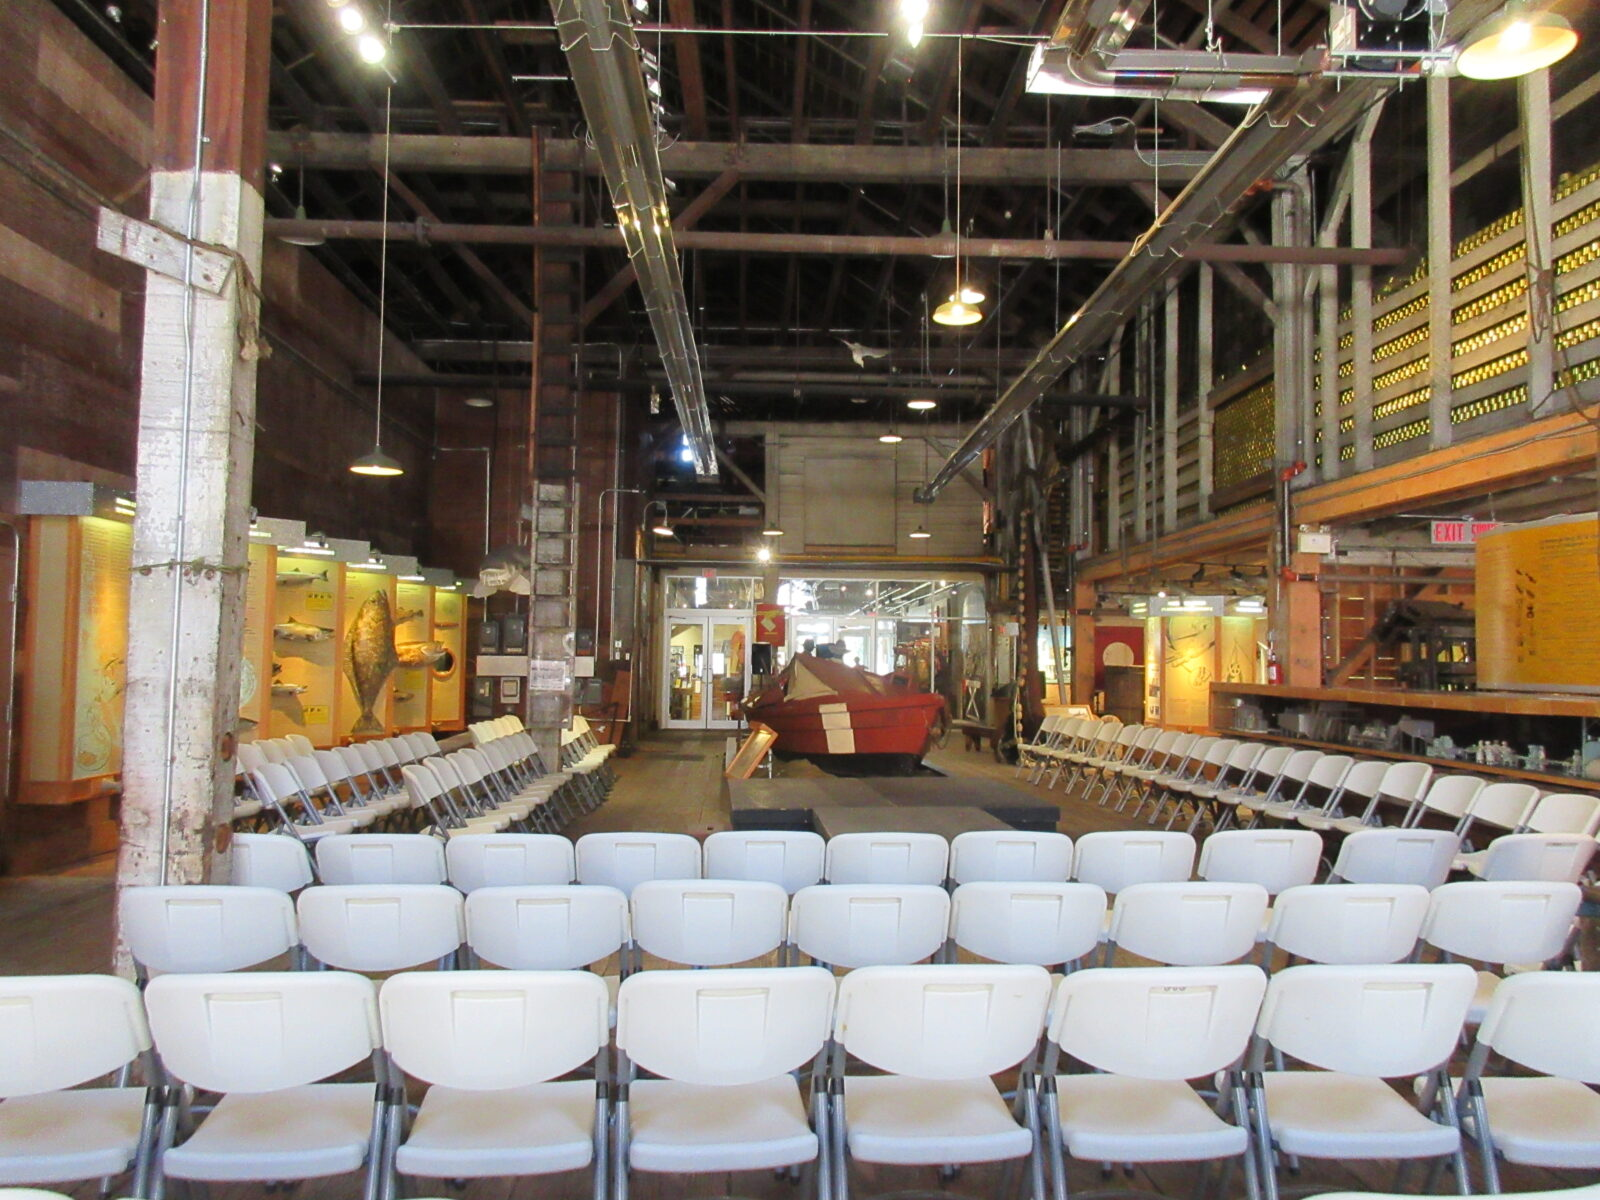 Chairs set up for fashion show inside the historic cannery